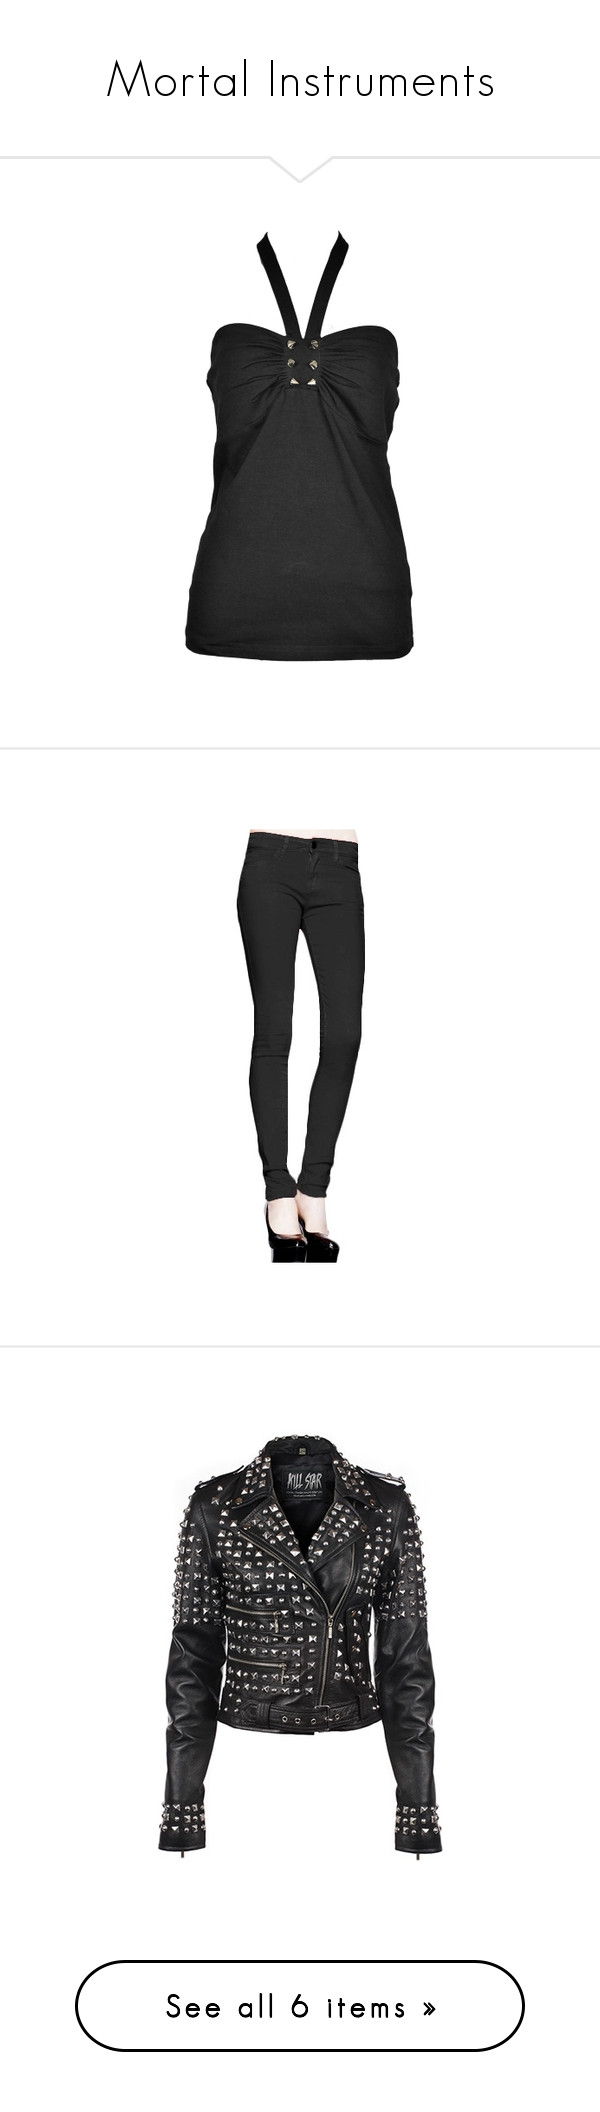 """""""Mortal Instruments"""" by joanna-davies ❤ liked on Polyvore featuring tops, jeans, skinny fit jeans, rock jeans, super skinny jeans, skinny leg jeans, skinny jeans, jackets, leather and studded"""